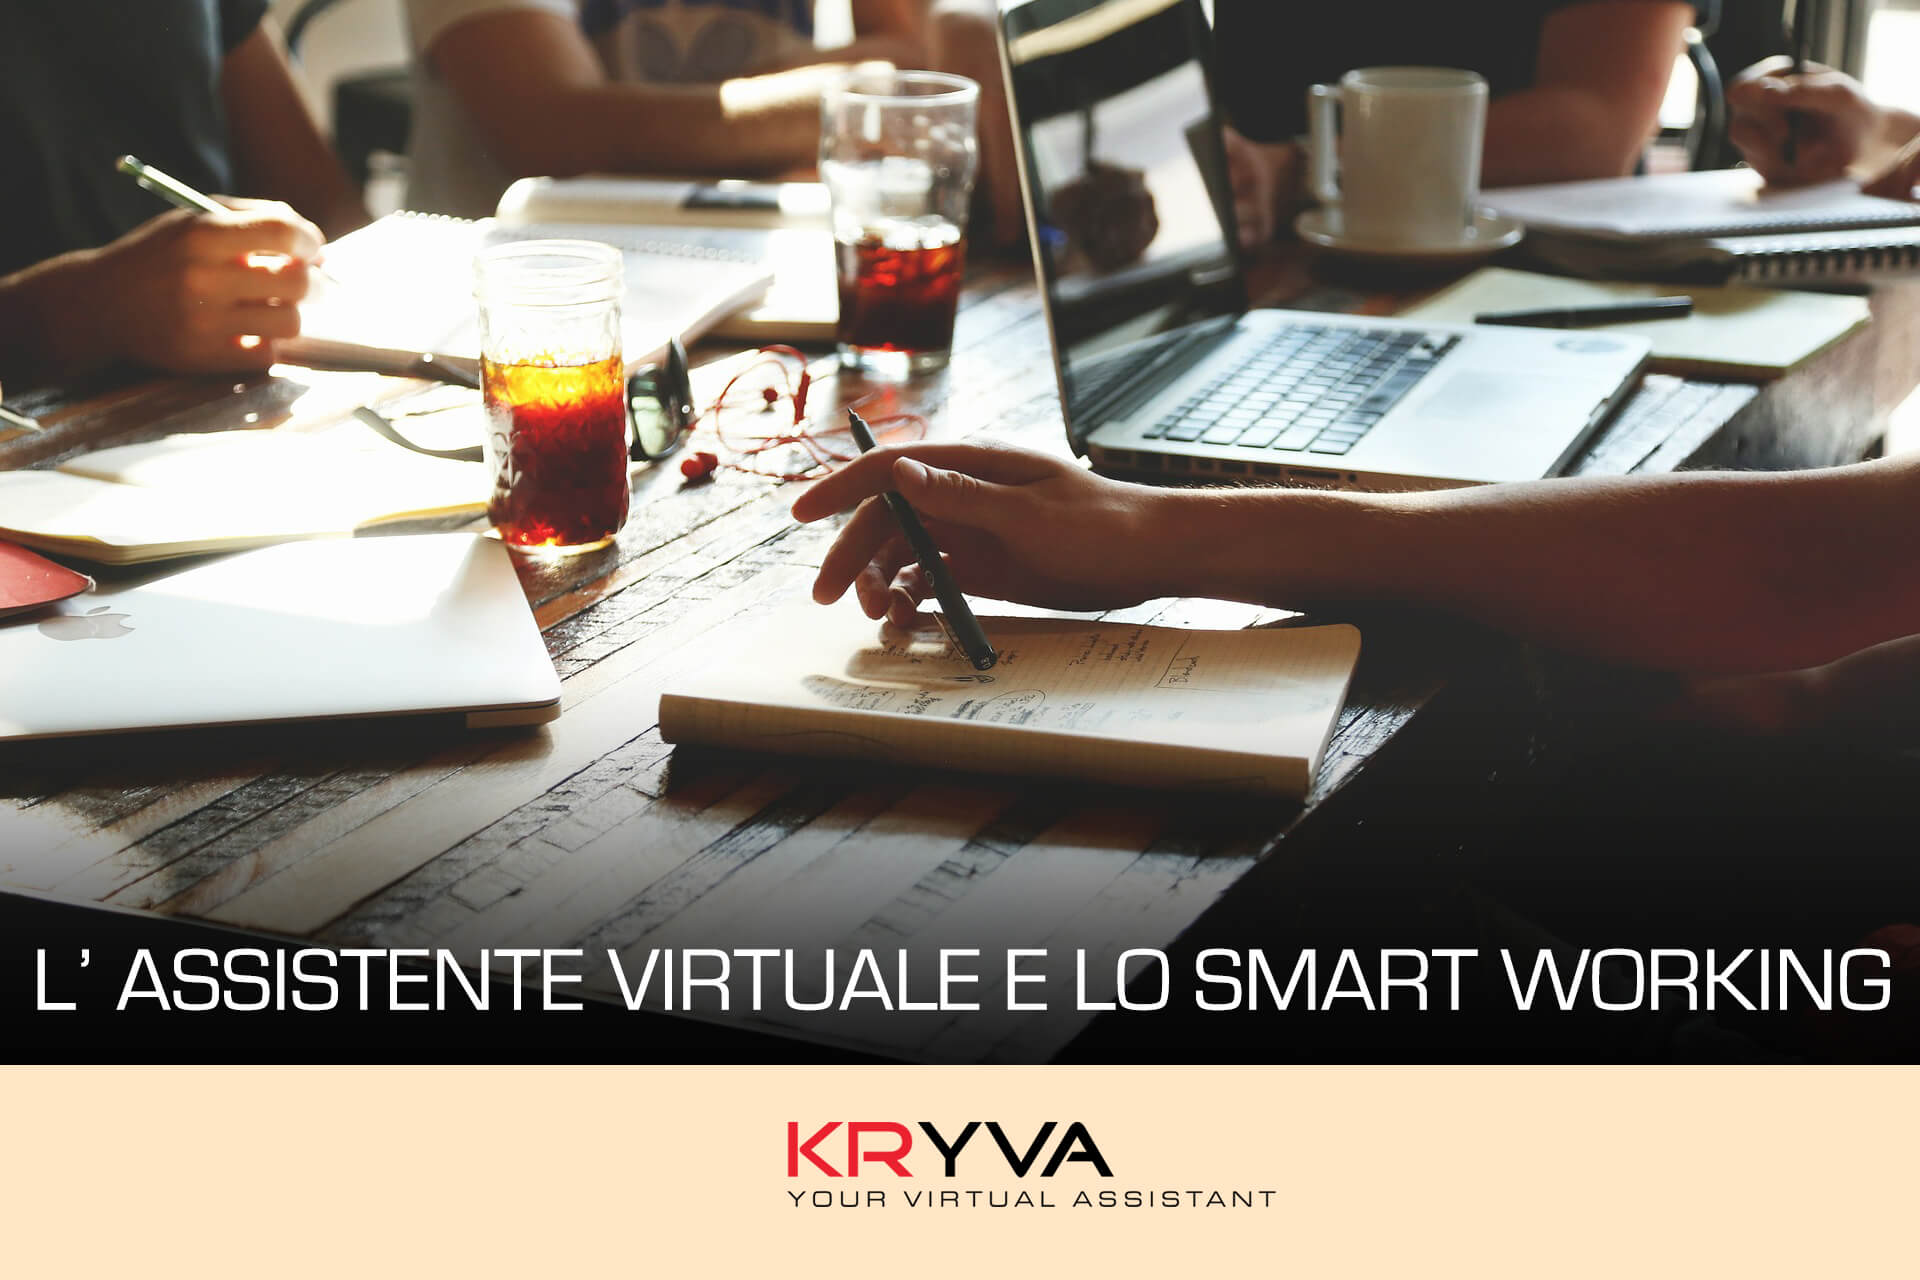 L' Assistente Virtuale e lo Smart Working